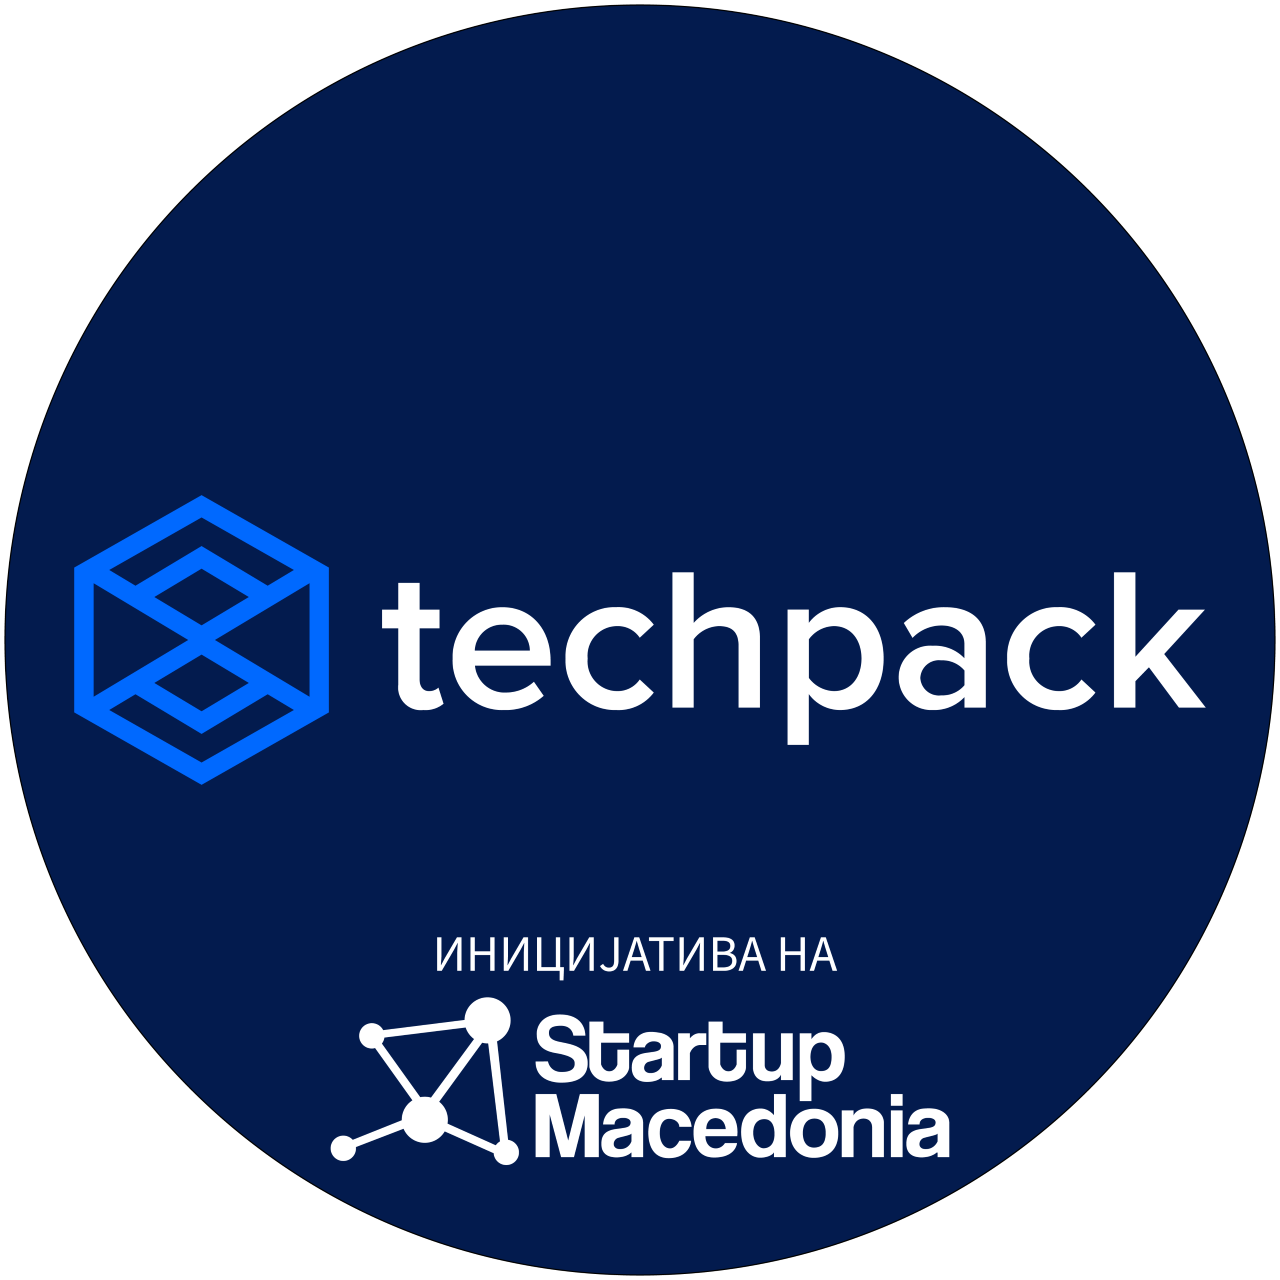 TechPack